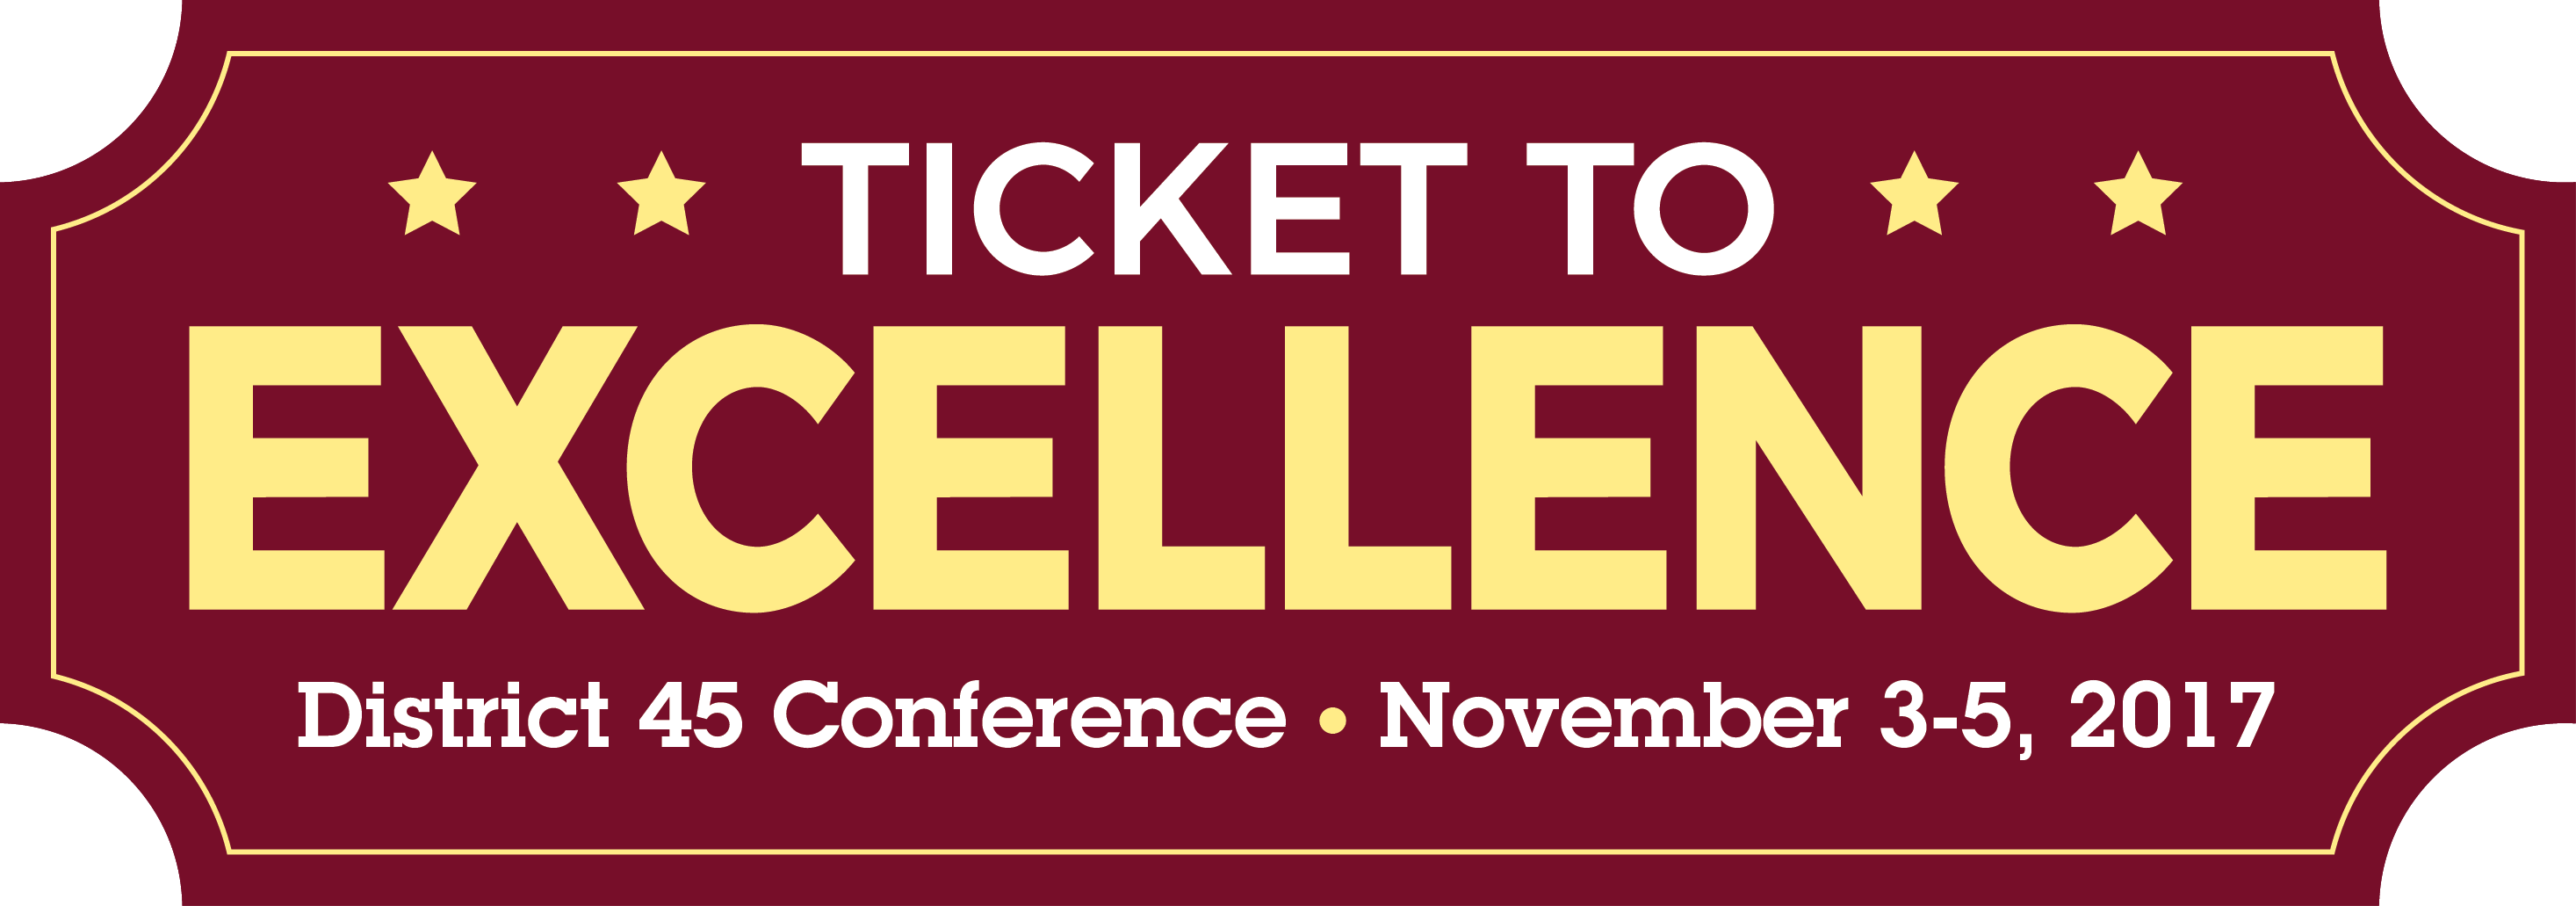 Ticket to Excellence Logo